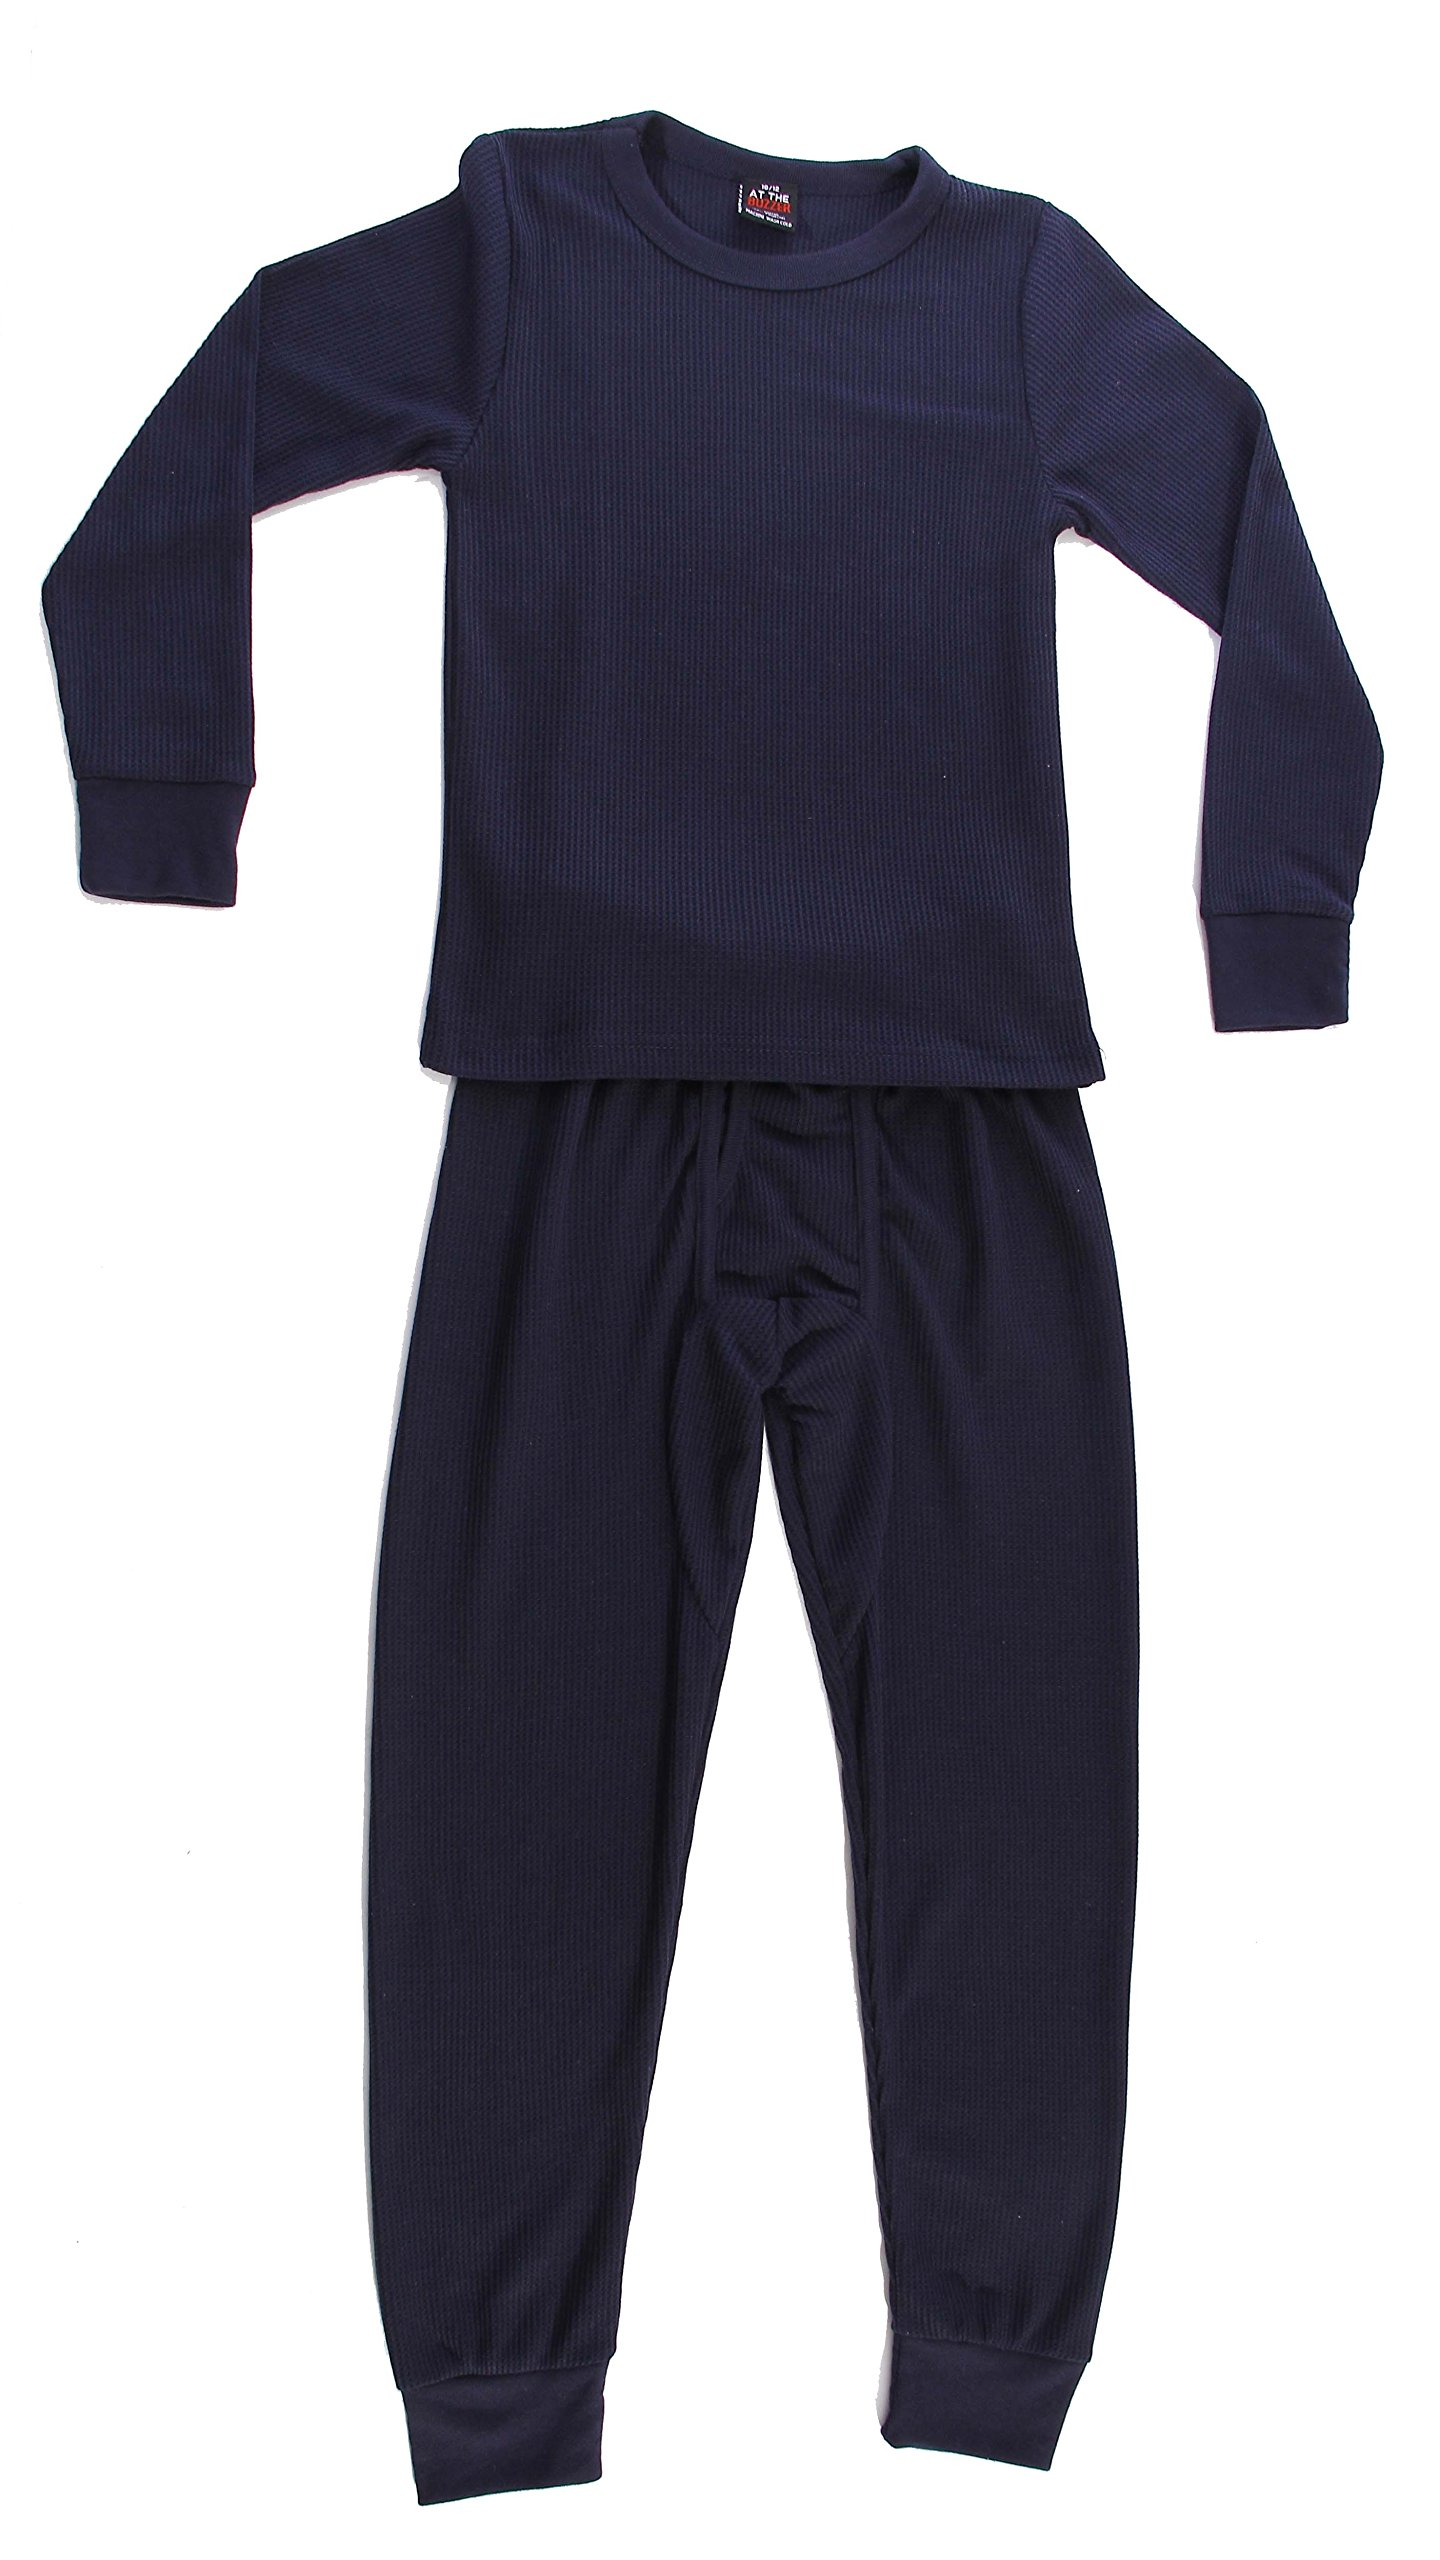 At The Buzzer Thermal Underwear Set for Boys 95362-Navy-18/20 by At The Buzzer